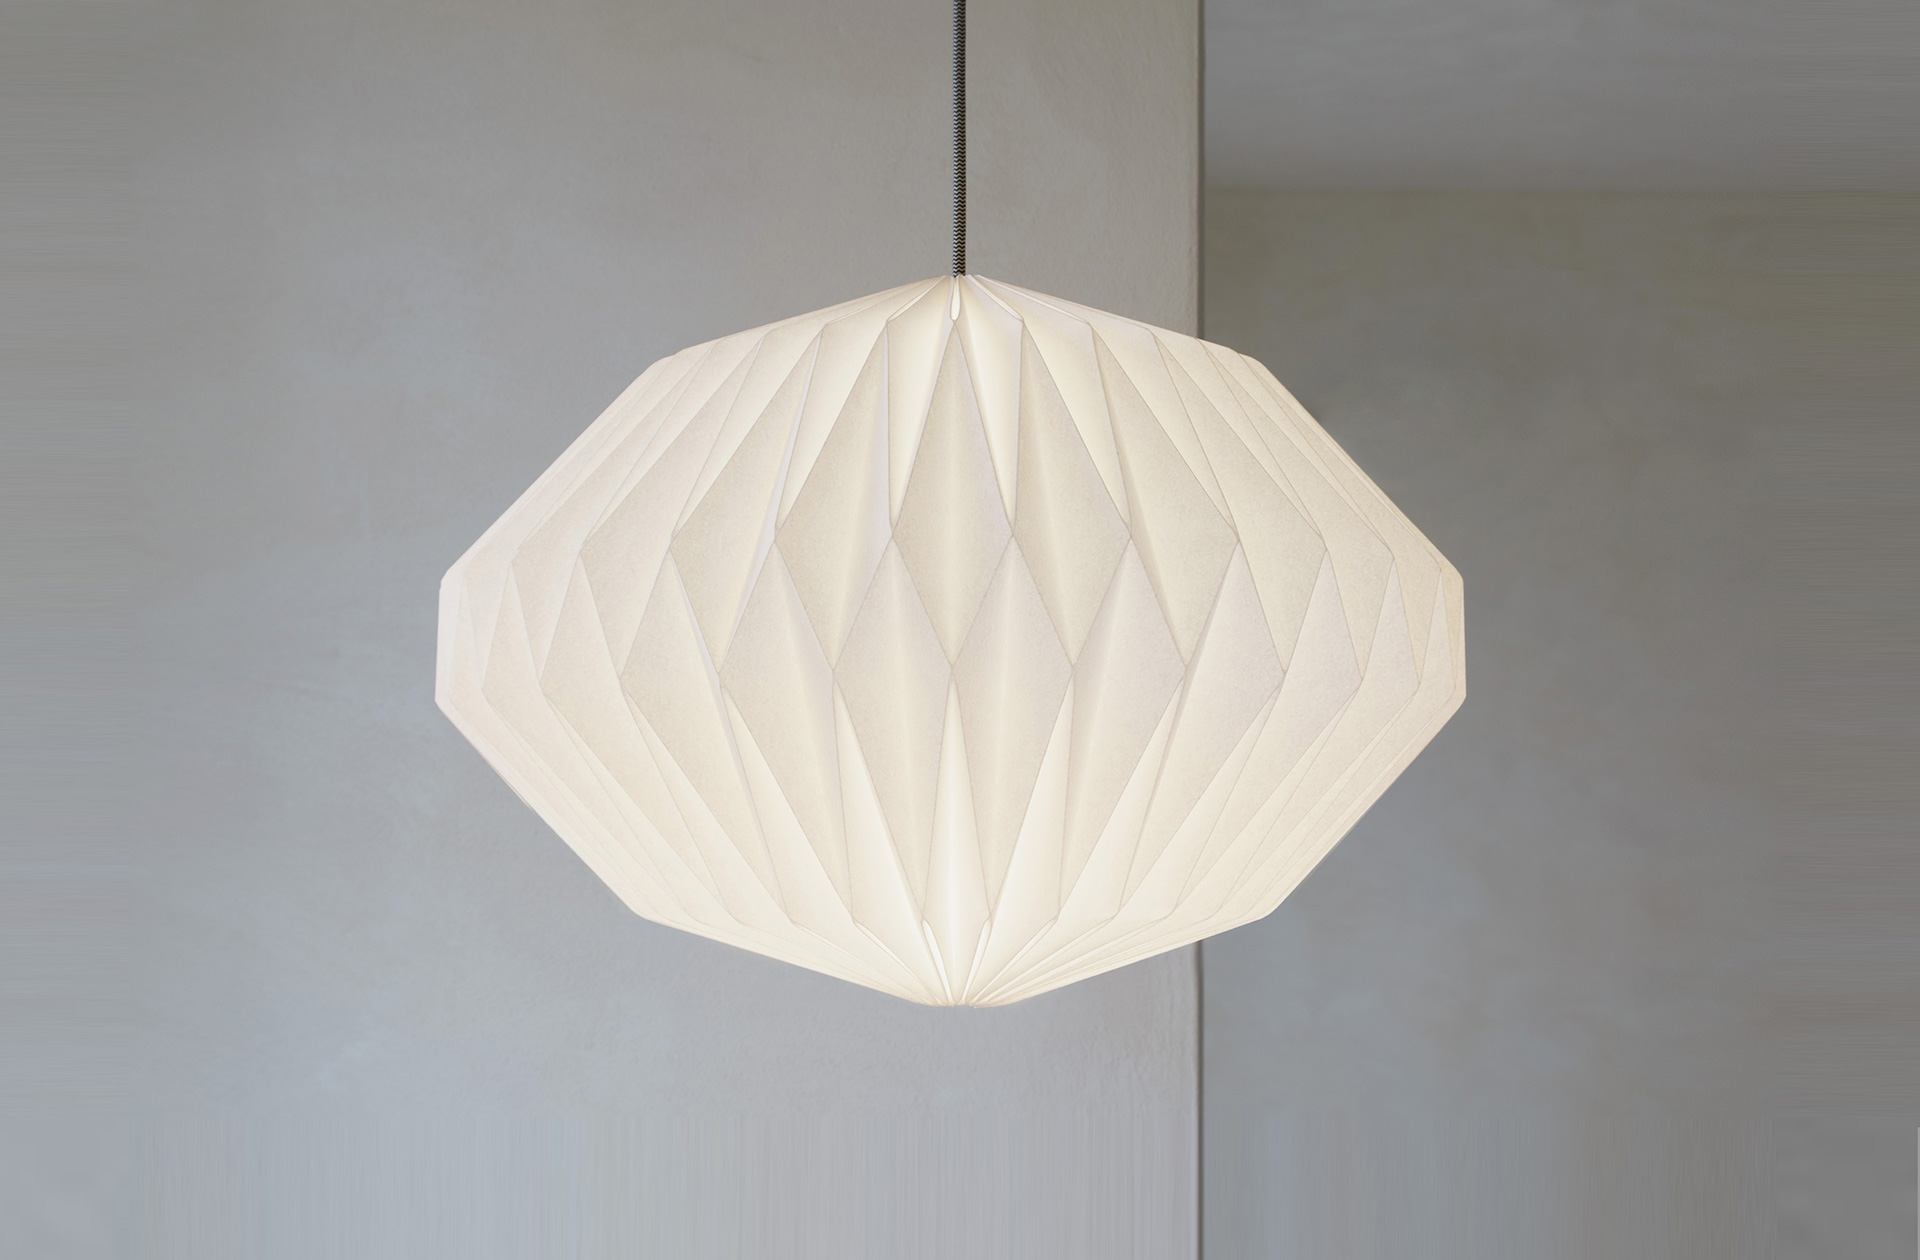 Jutta mntefering art aurea jutta mntefering heaven knows origami lamp shade aloadofball Image collections